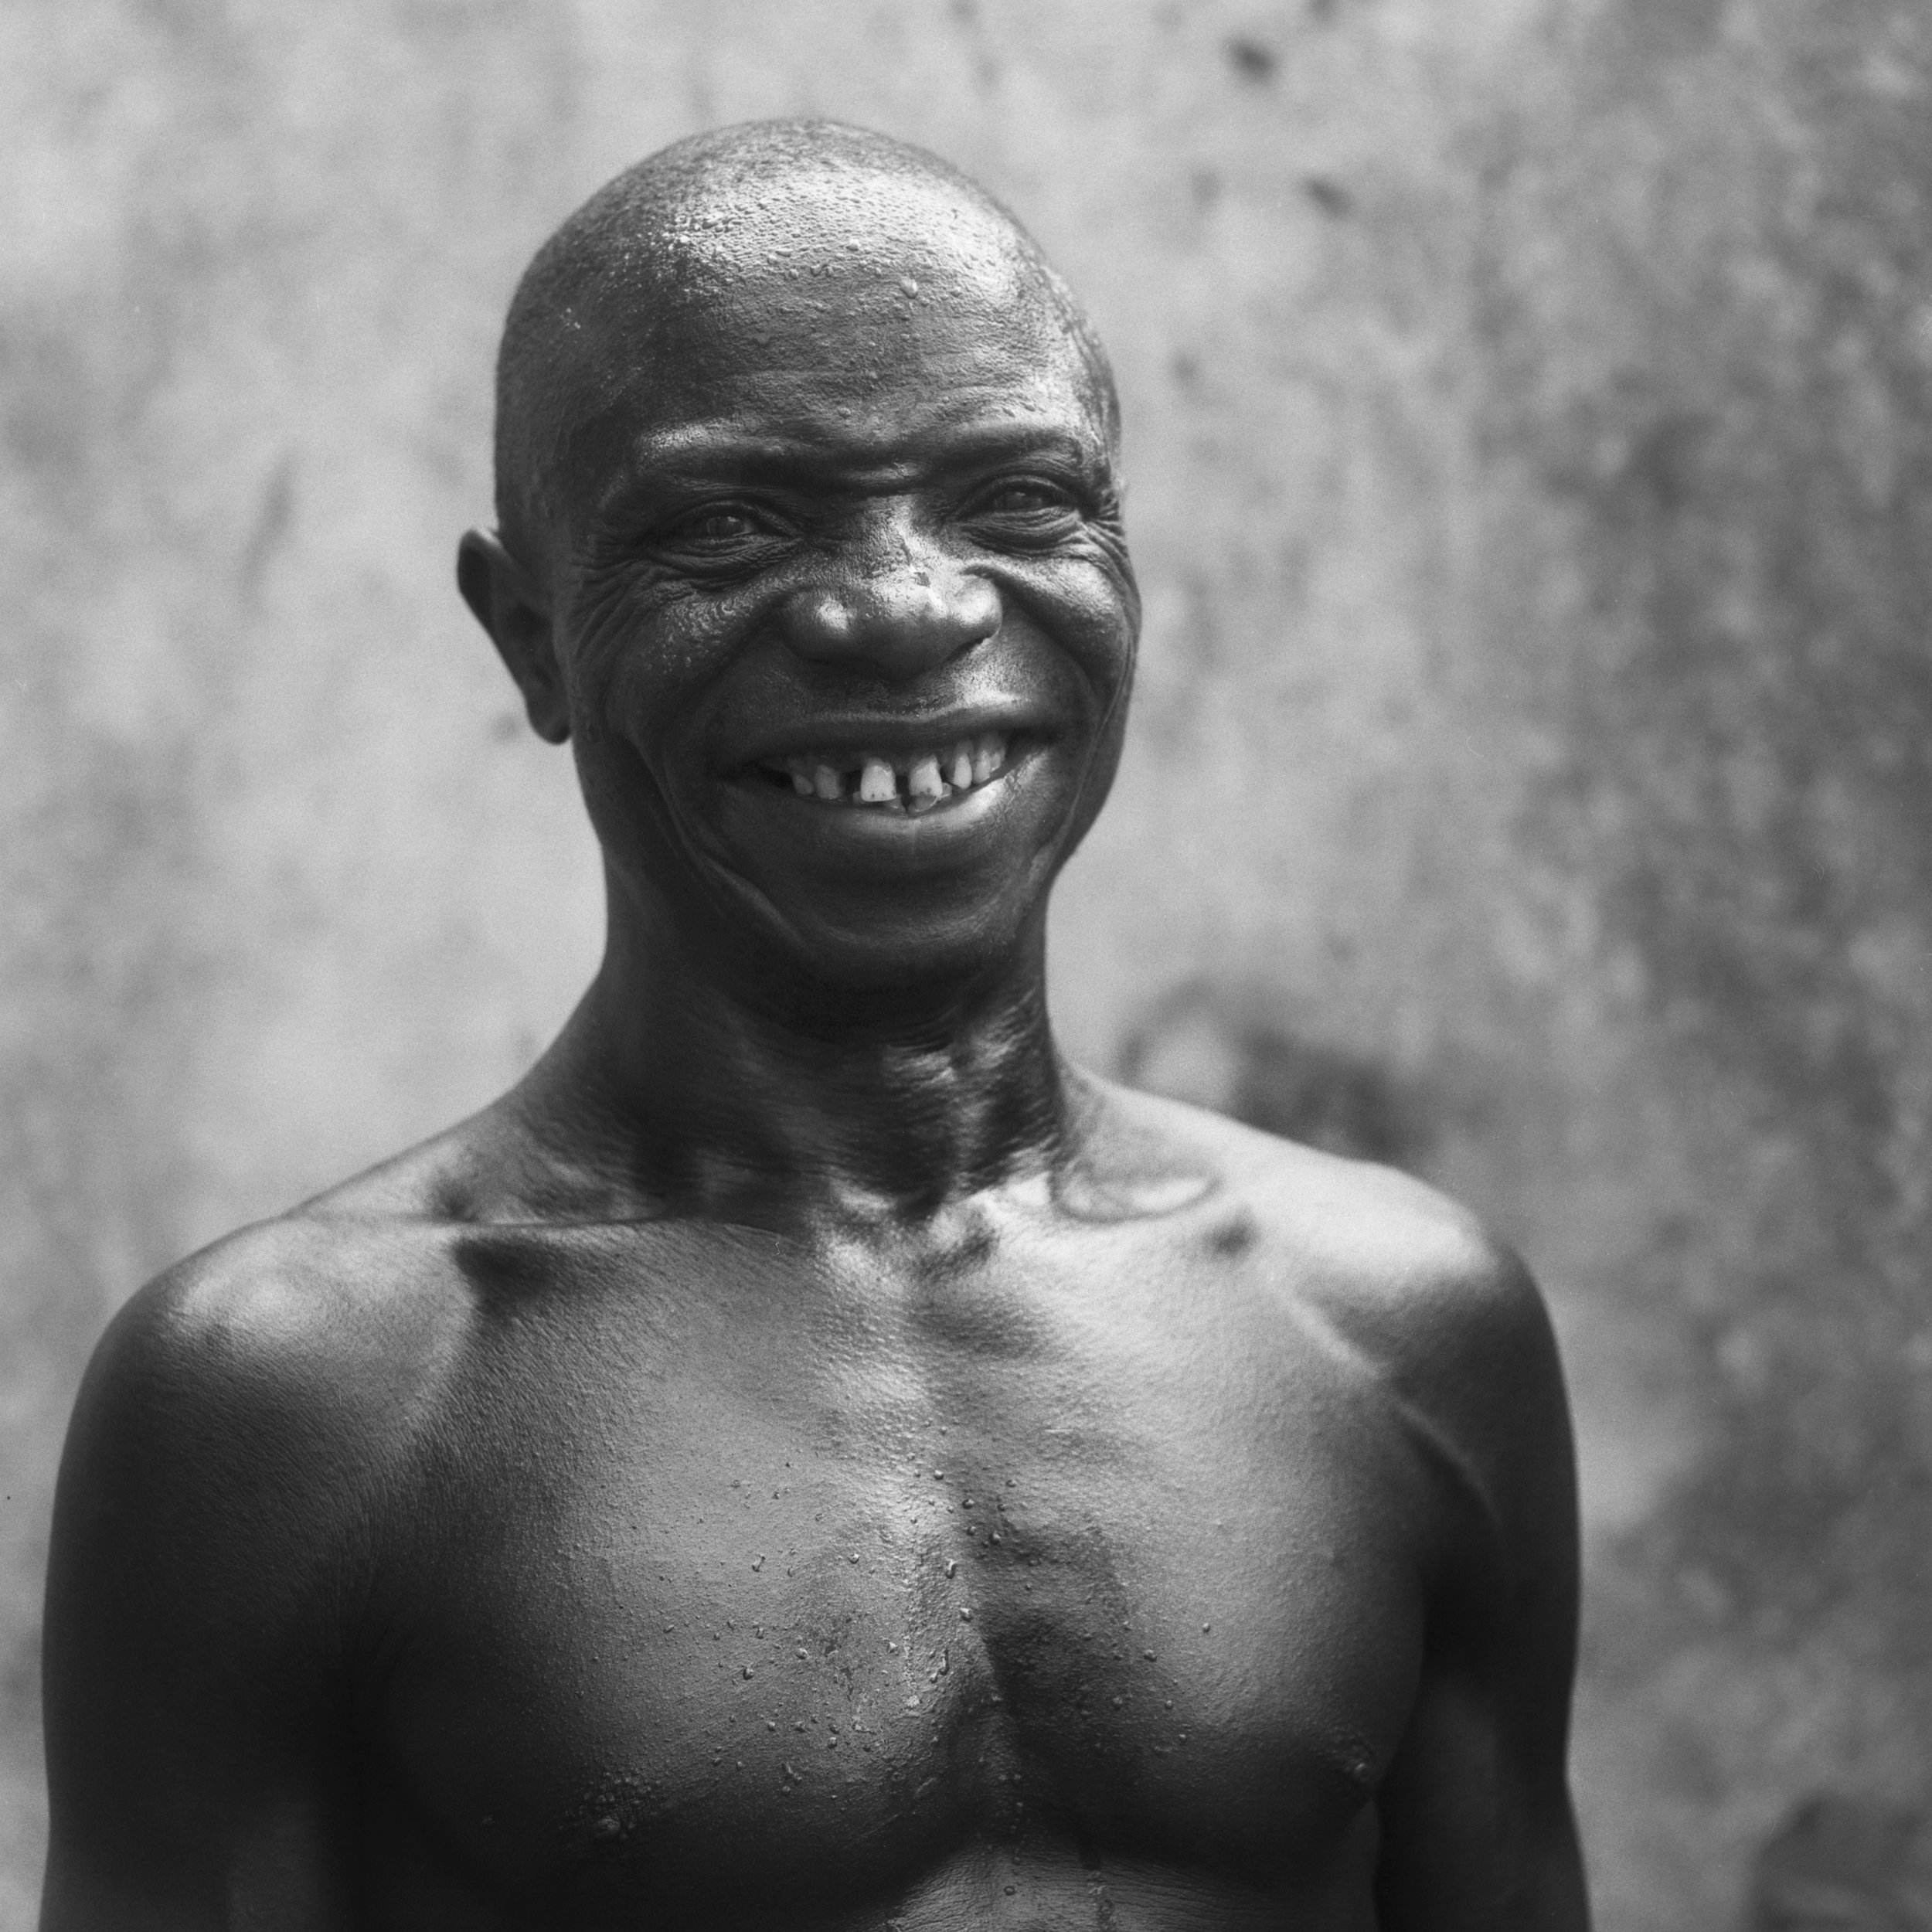 Portraits As We Are - Portrait 16a by Nii Obodai